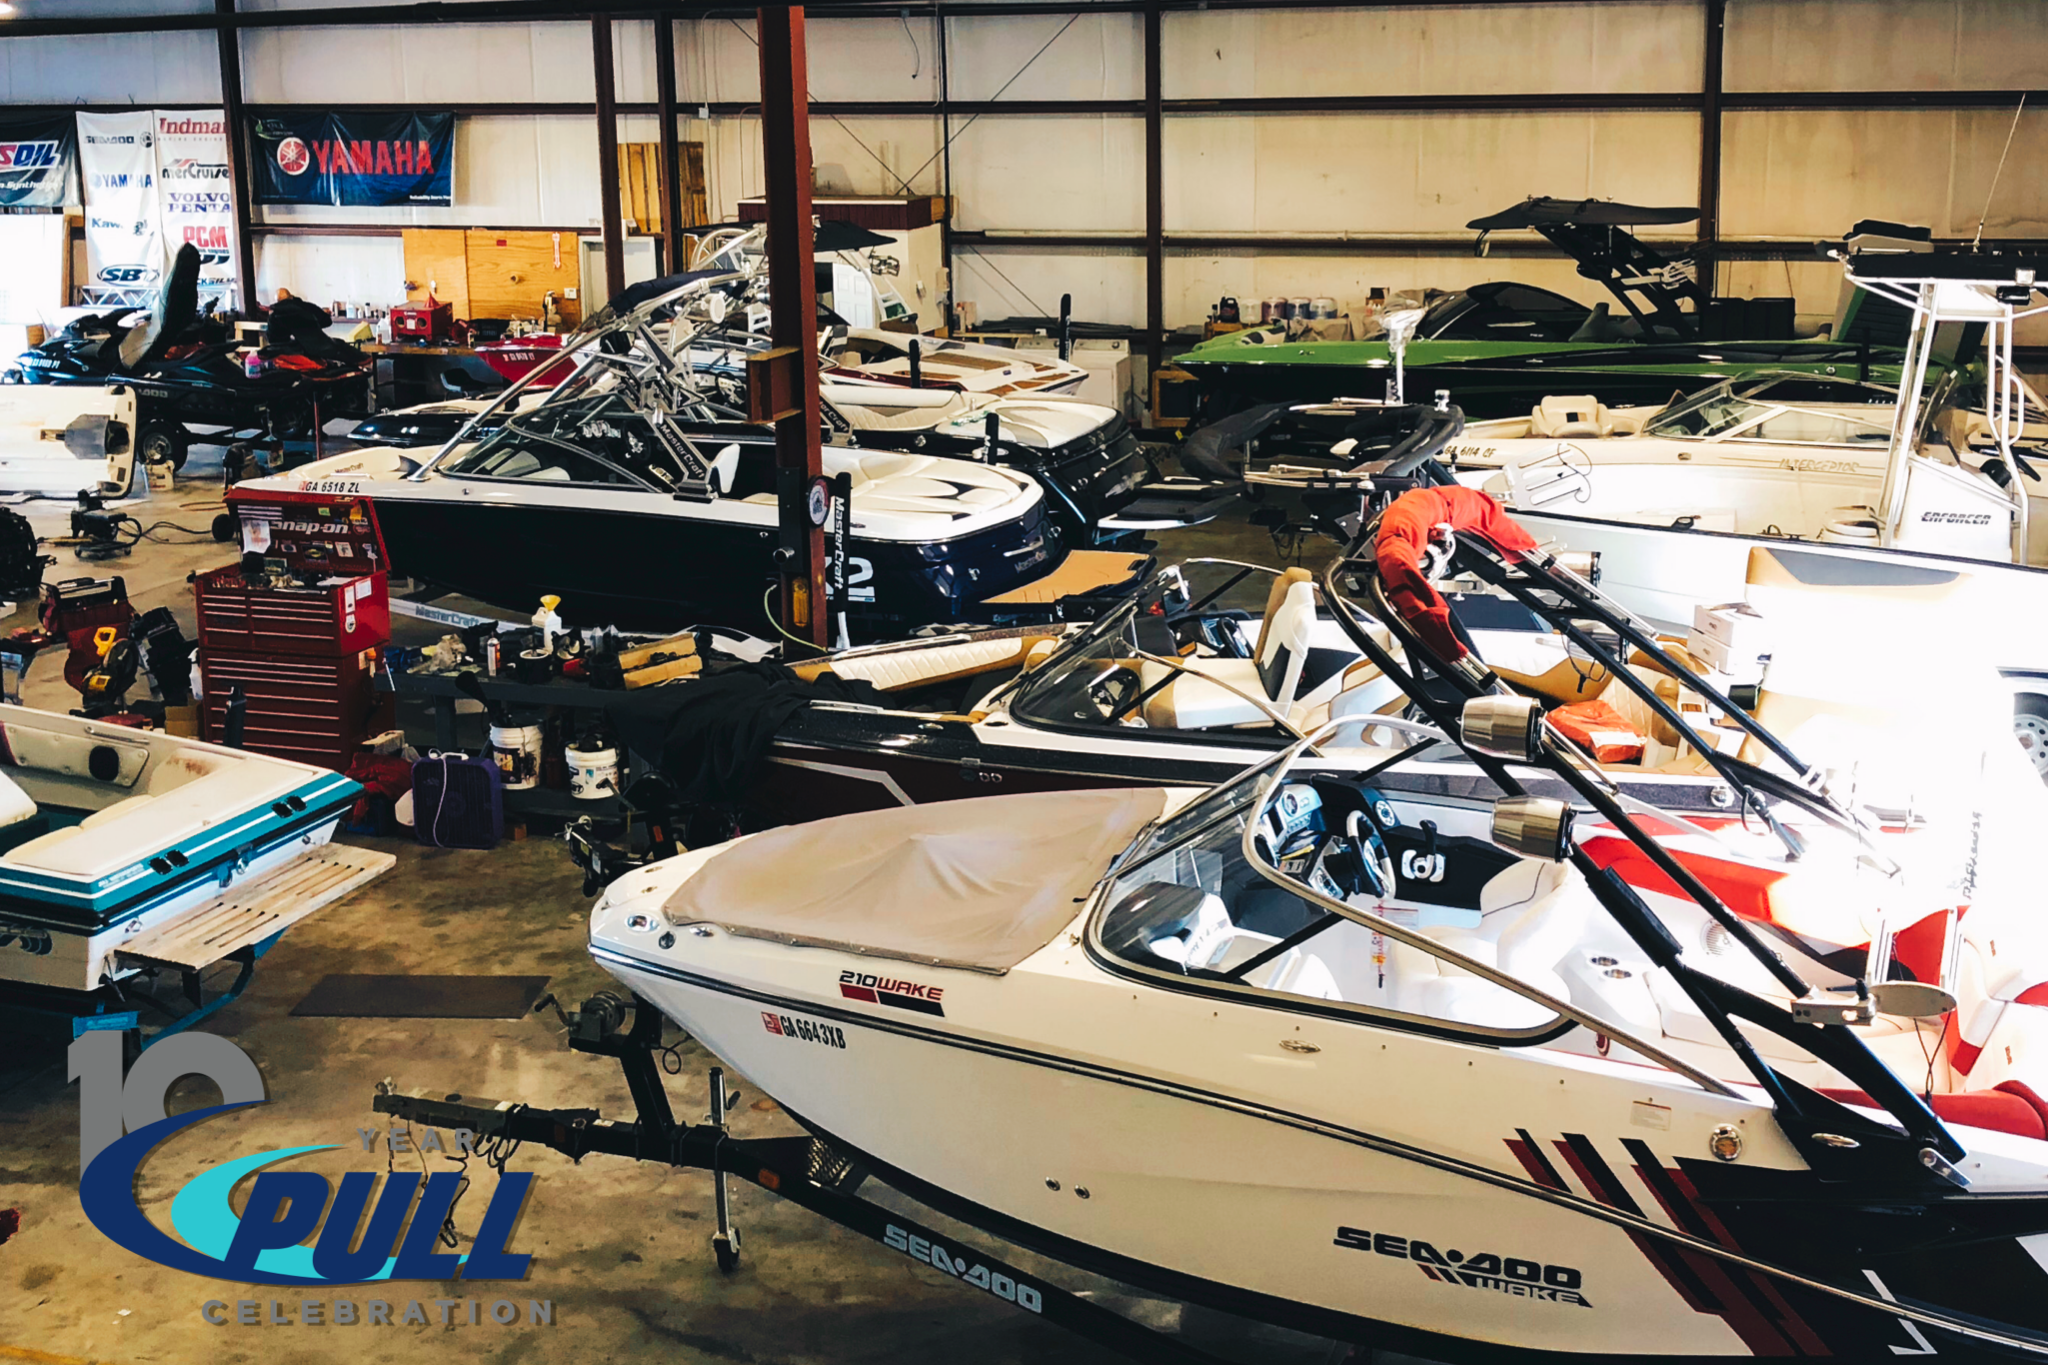 Service in action at PULL Watersports